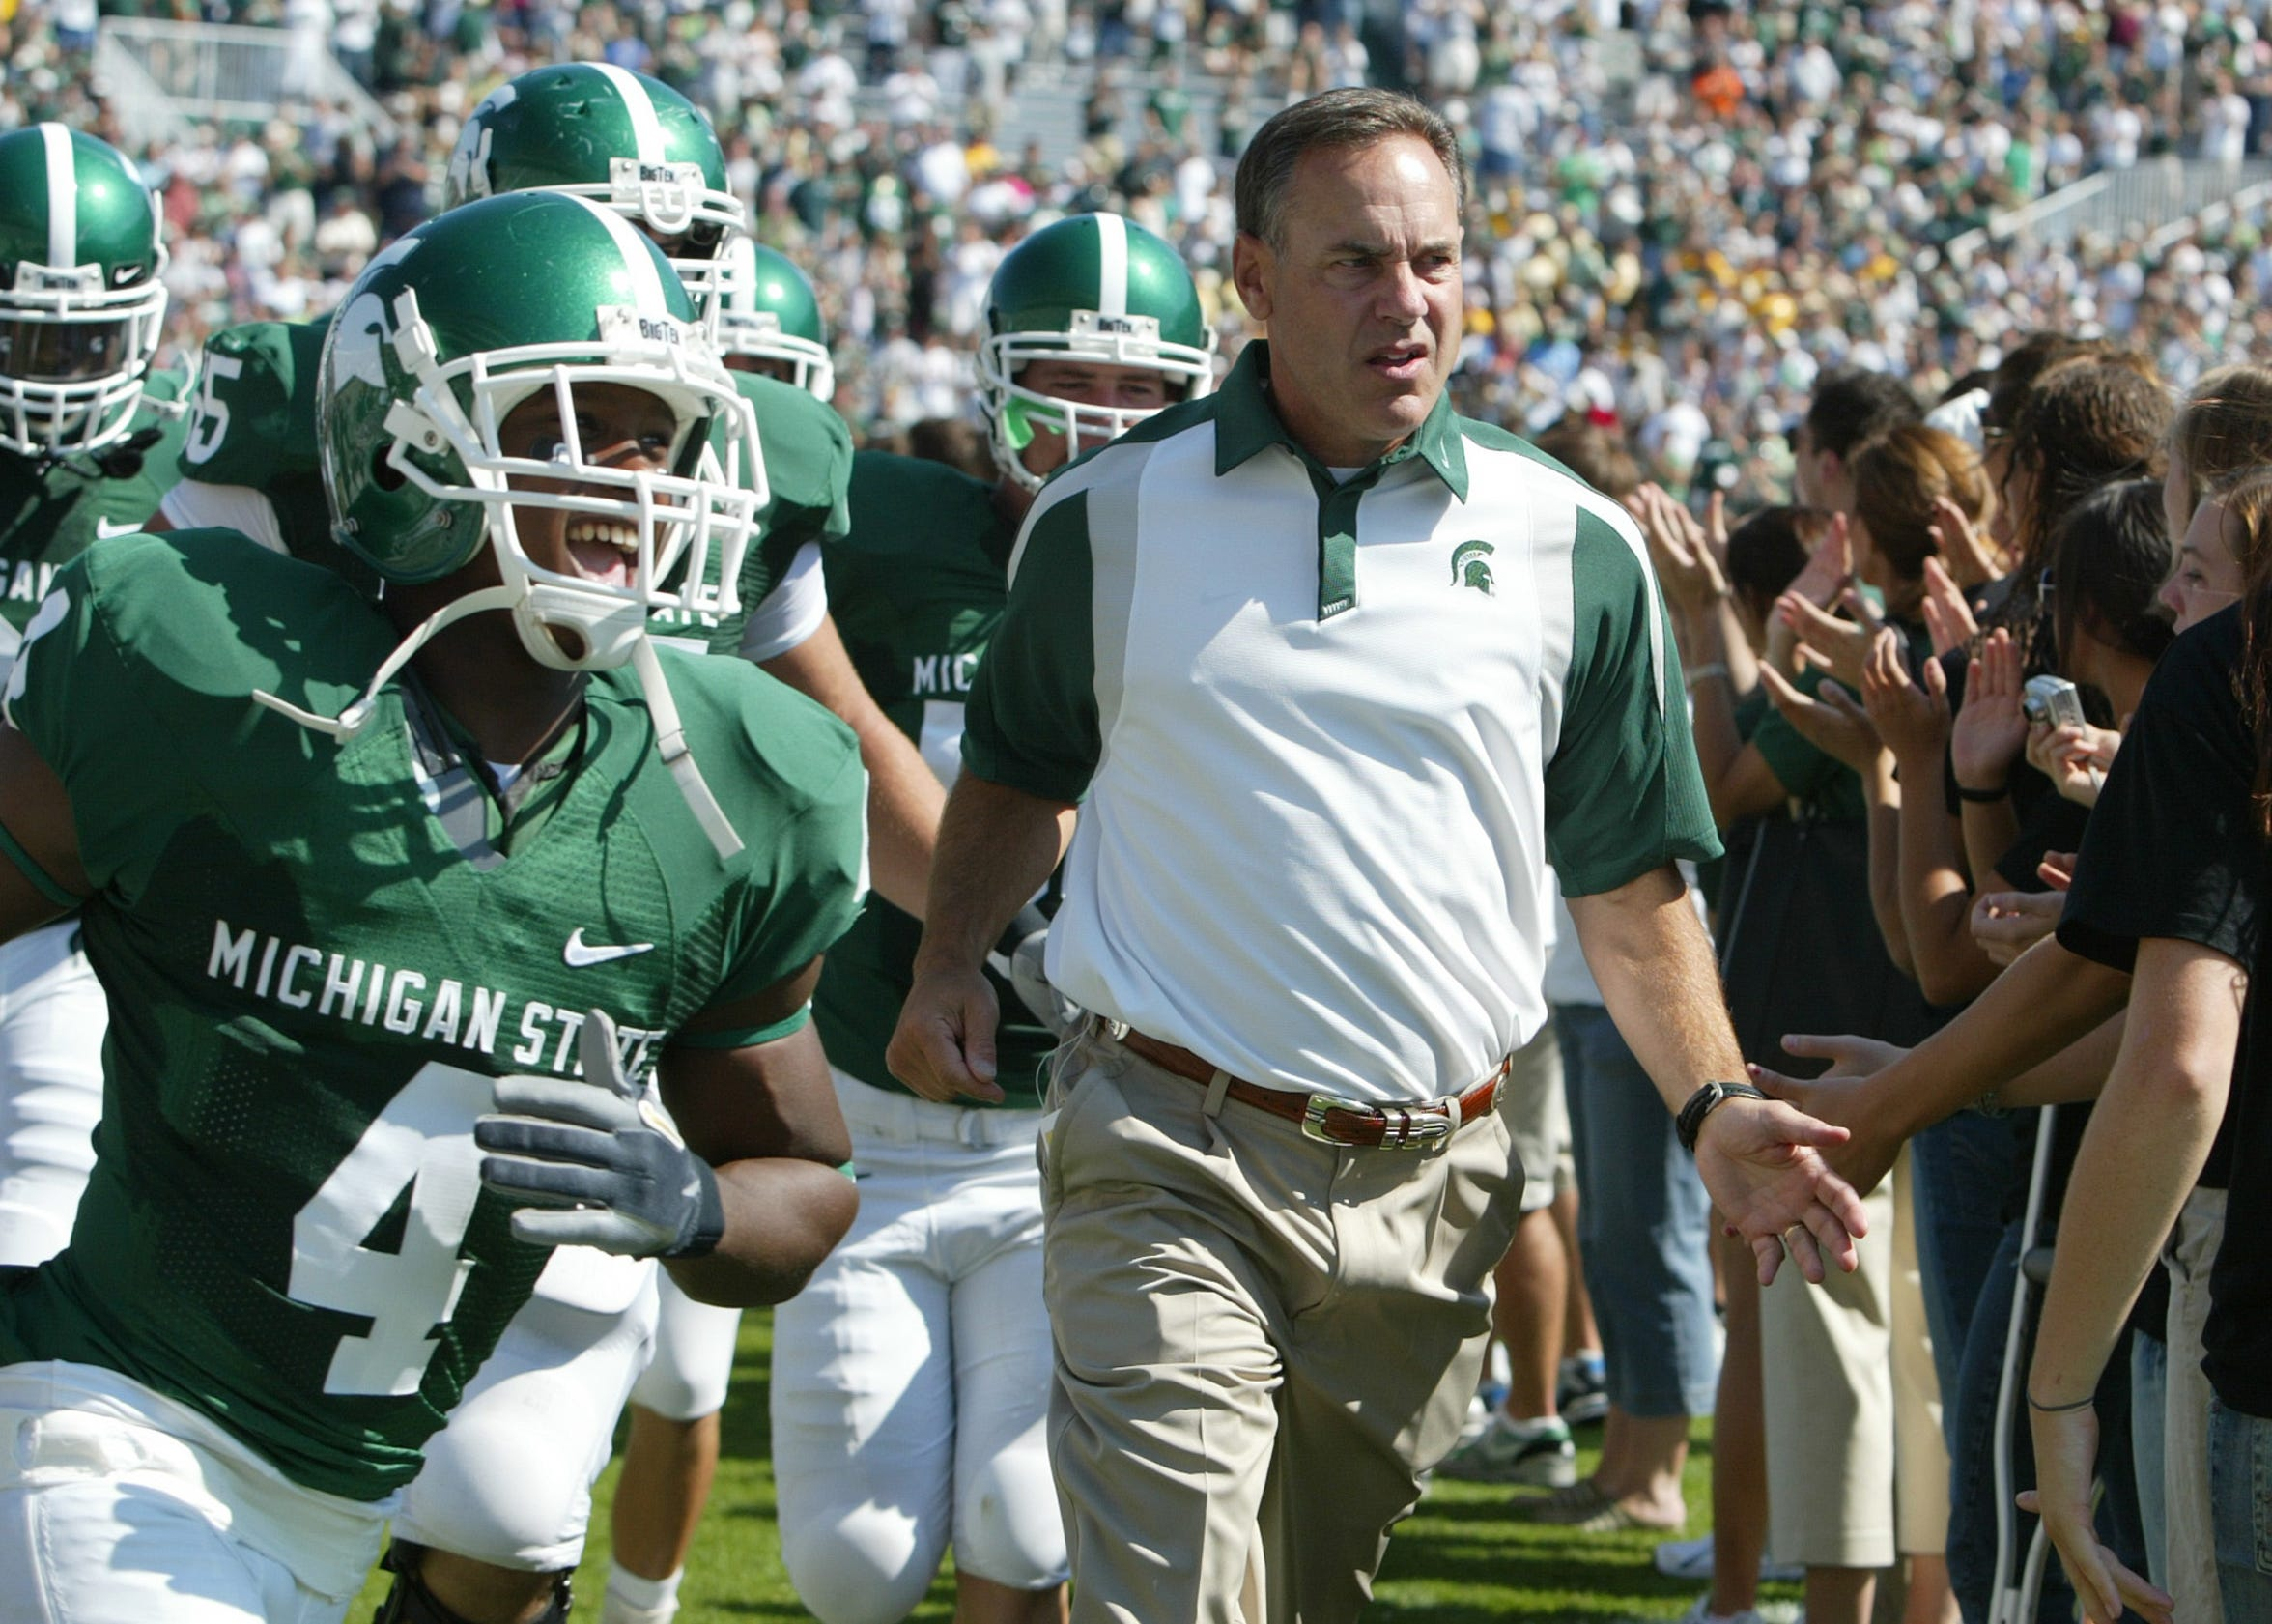 Mark Dantonio runs onto the field with his players before the start of his first game as coach, against UAB, Saturday, Sept. 1, 2007, in East Lansing.